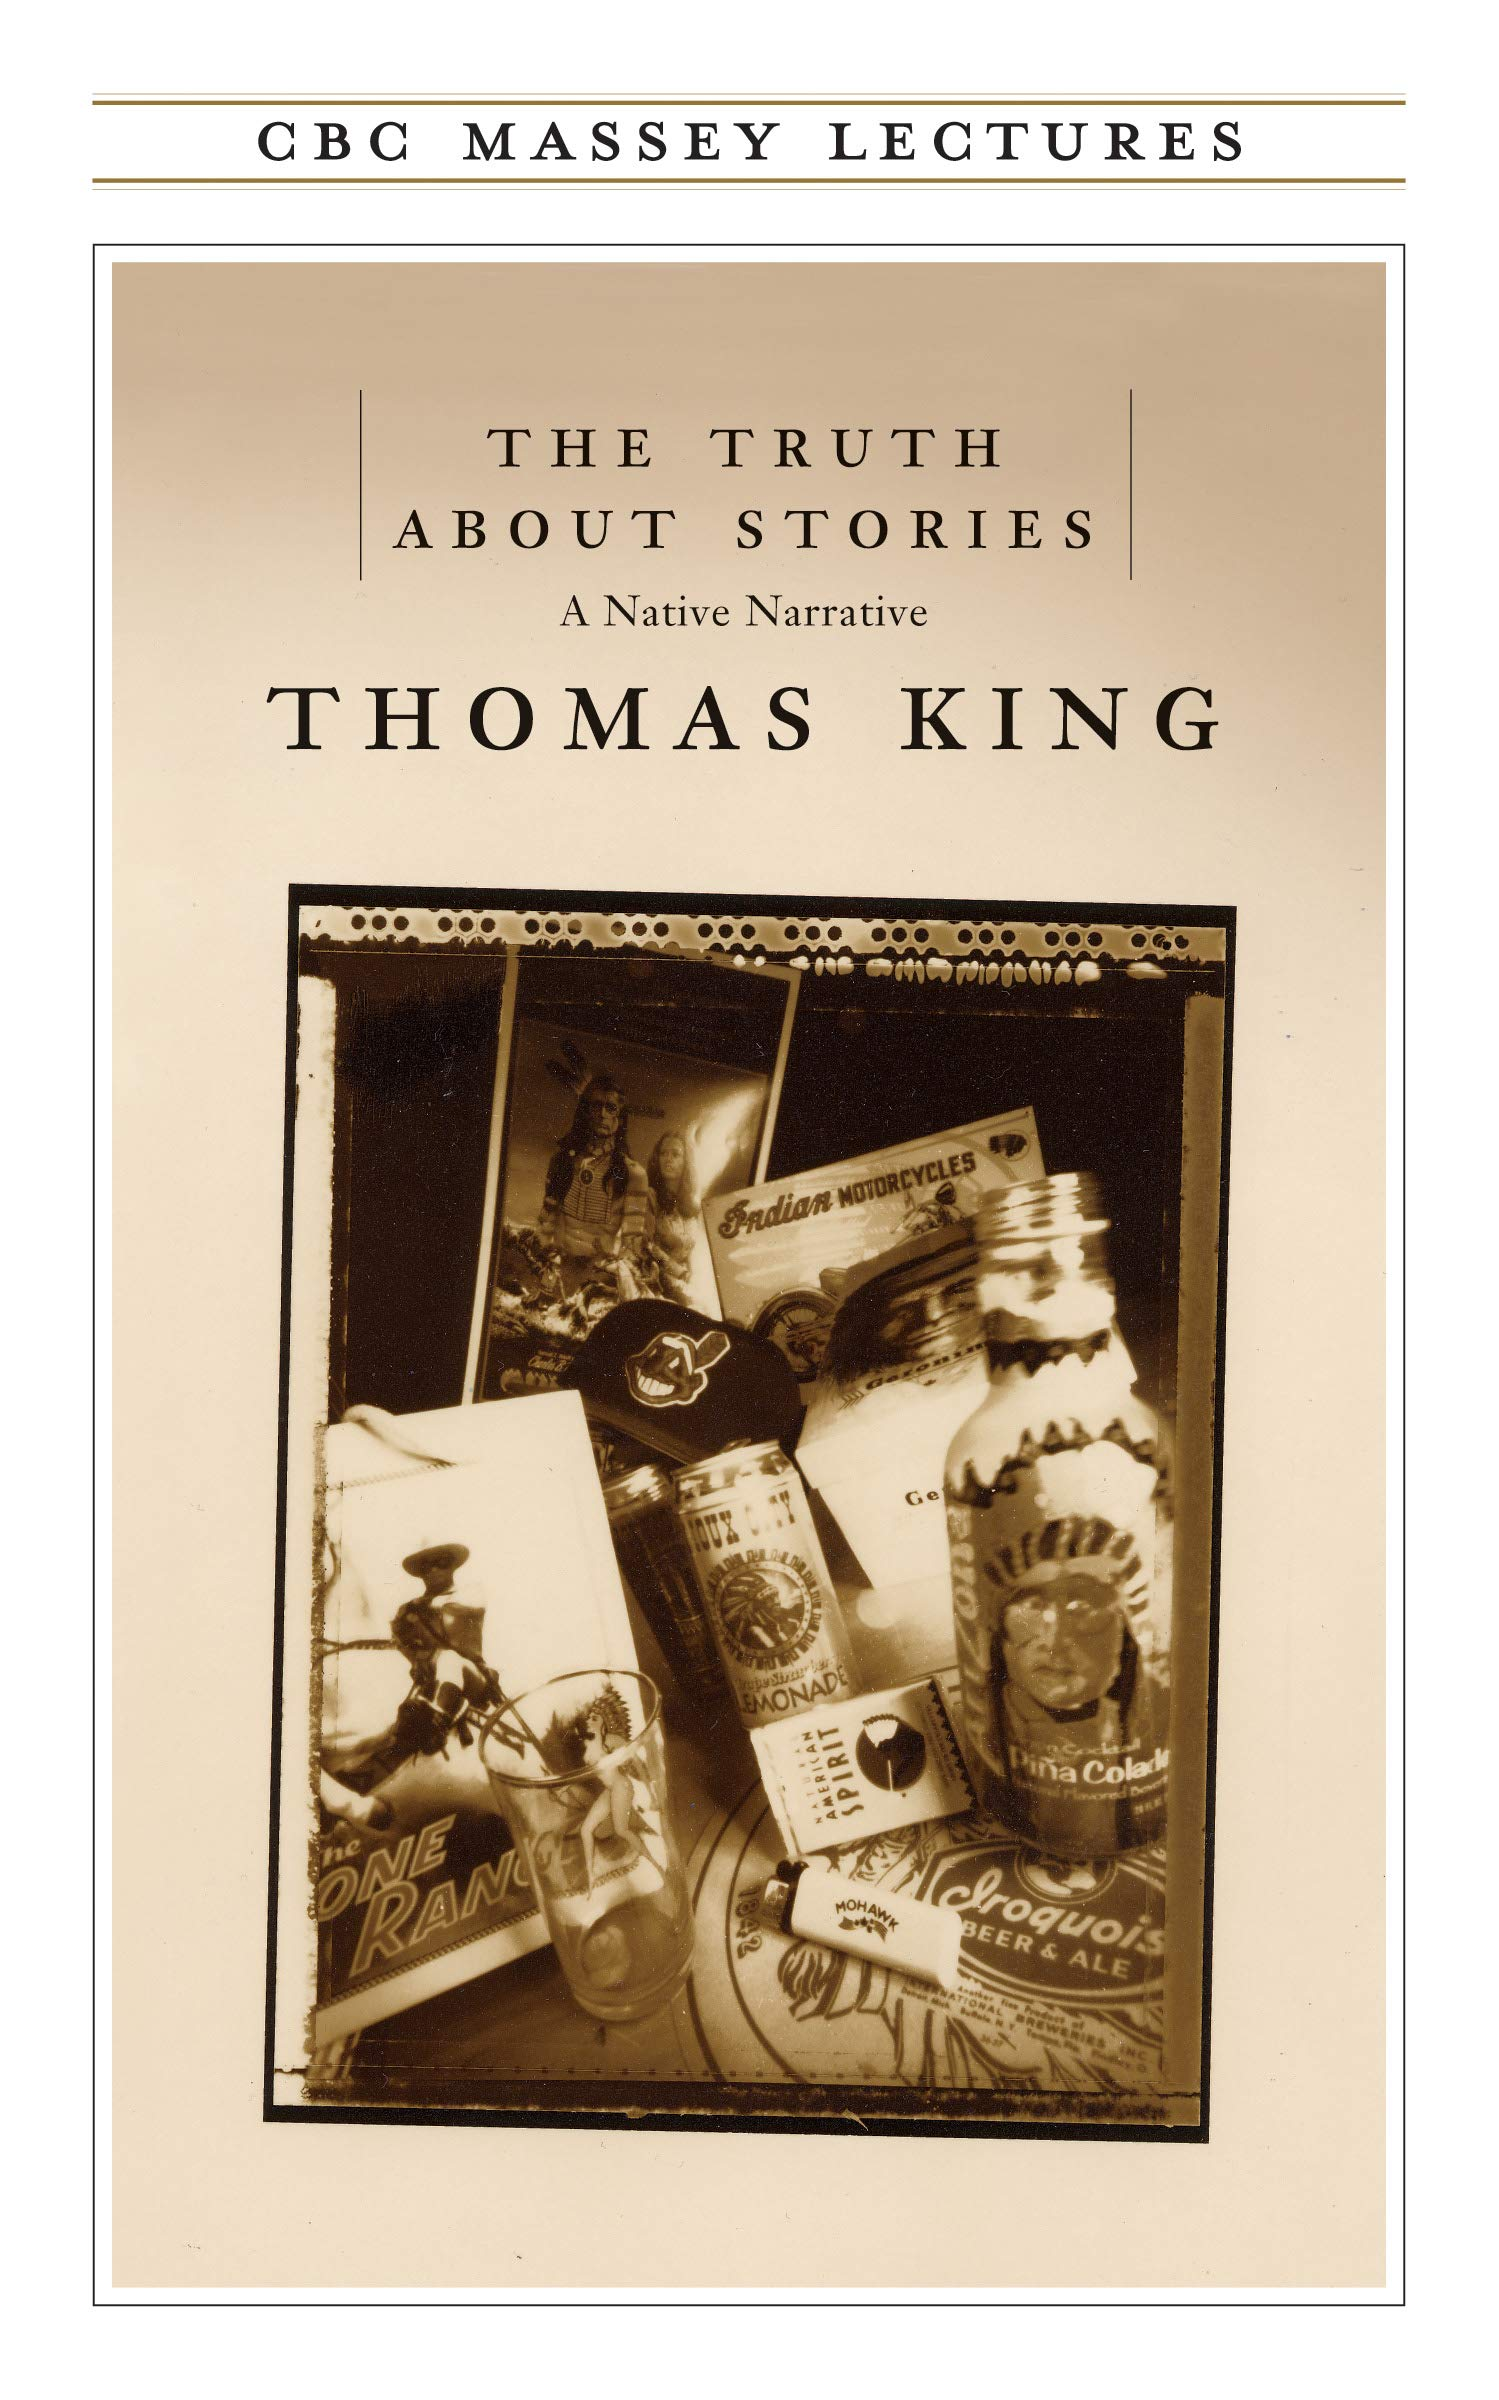 The Truth About Stories: King, Thomas: 9780887846960: Books - Amazon.ca